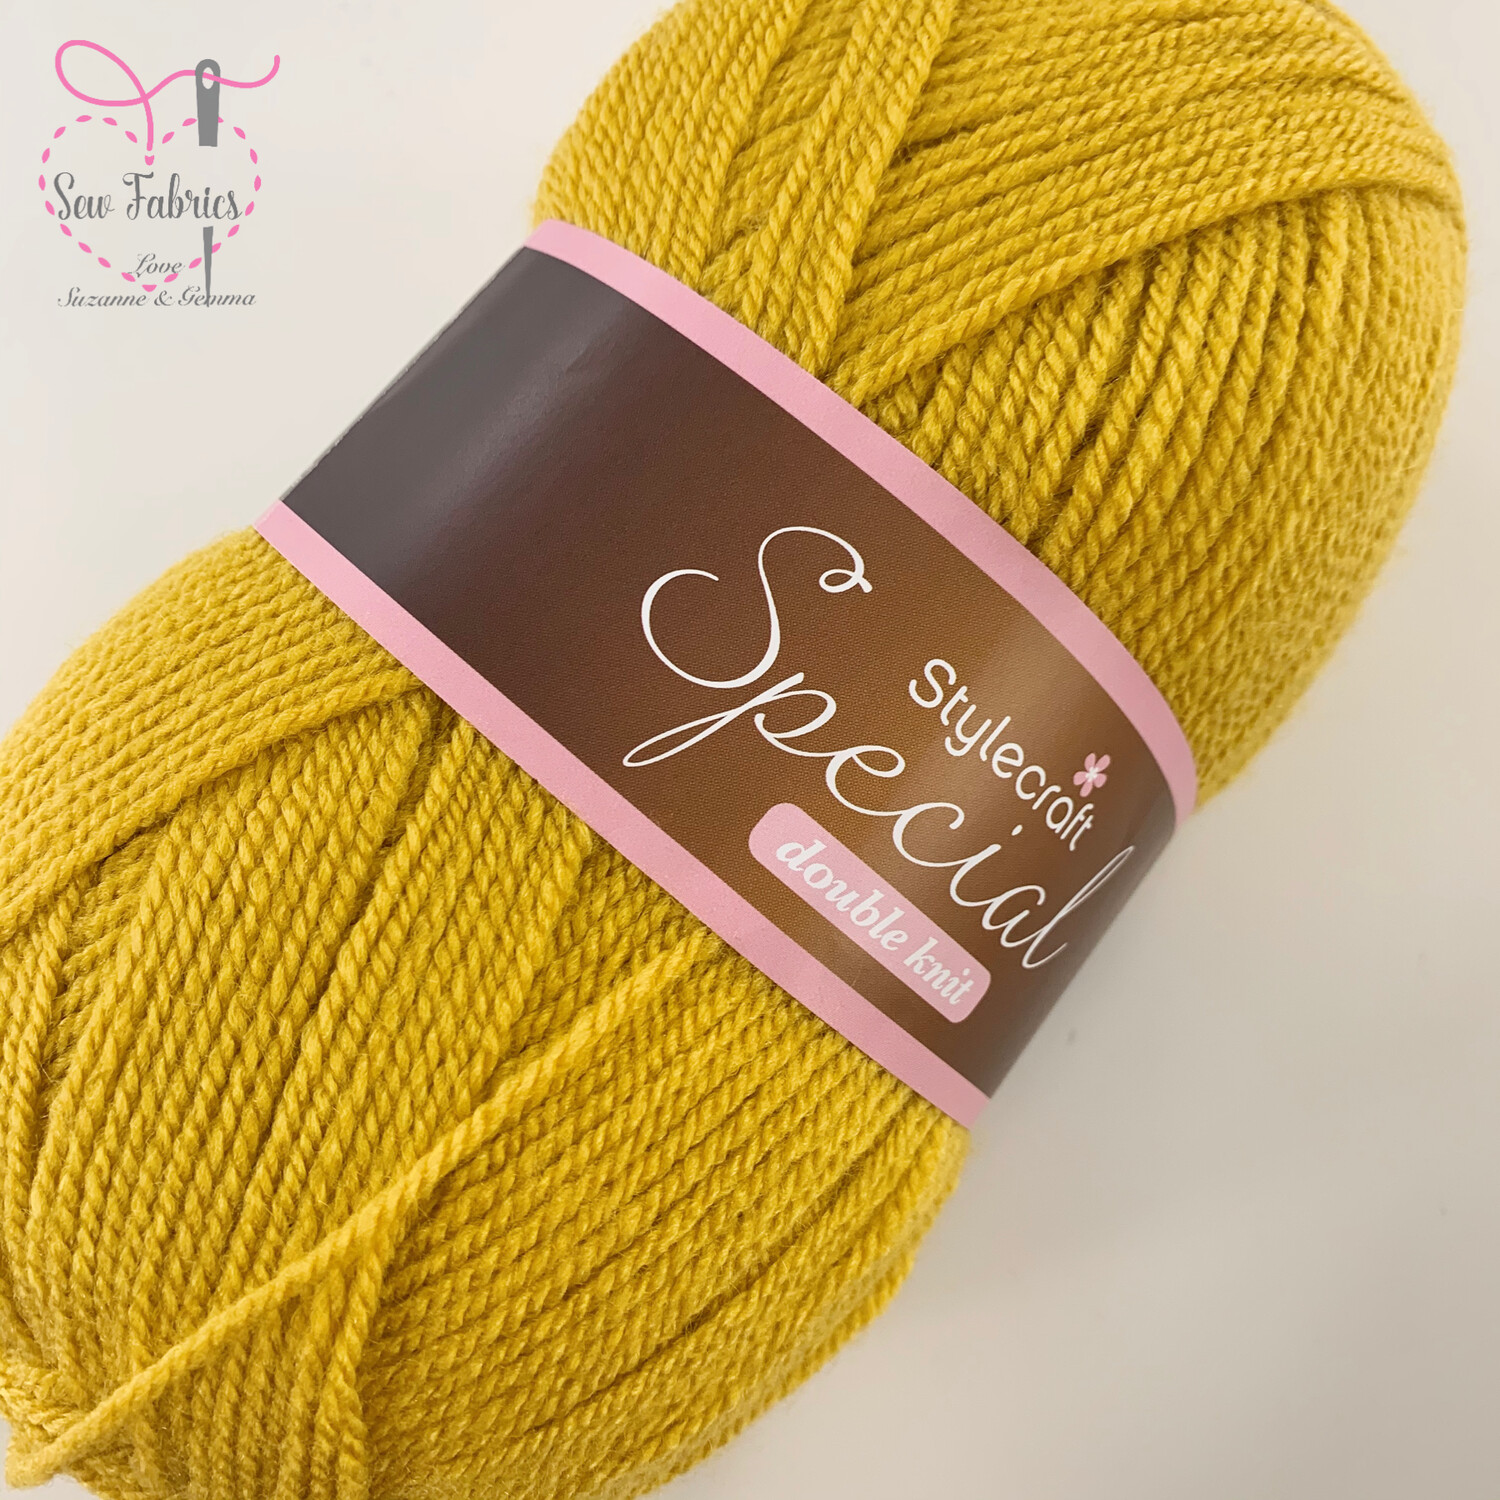 Stylecraft Special DK 100% Premium Acrylic Wool - Mustard  Buy More Than 1 Ball & Get 30% Off With Code STYLE30